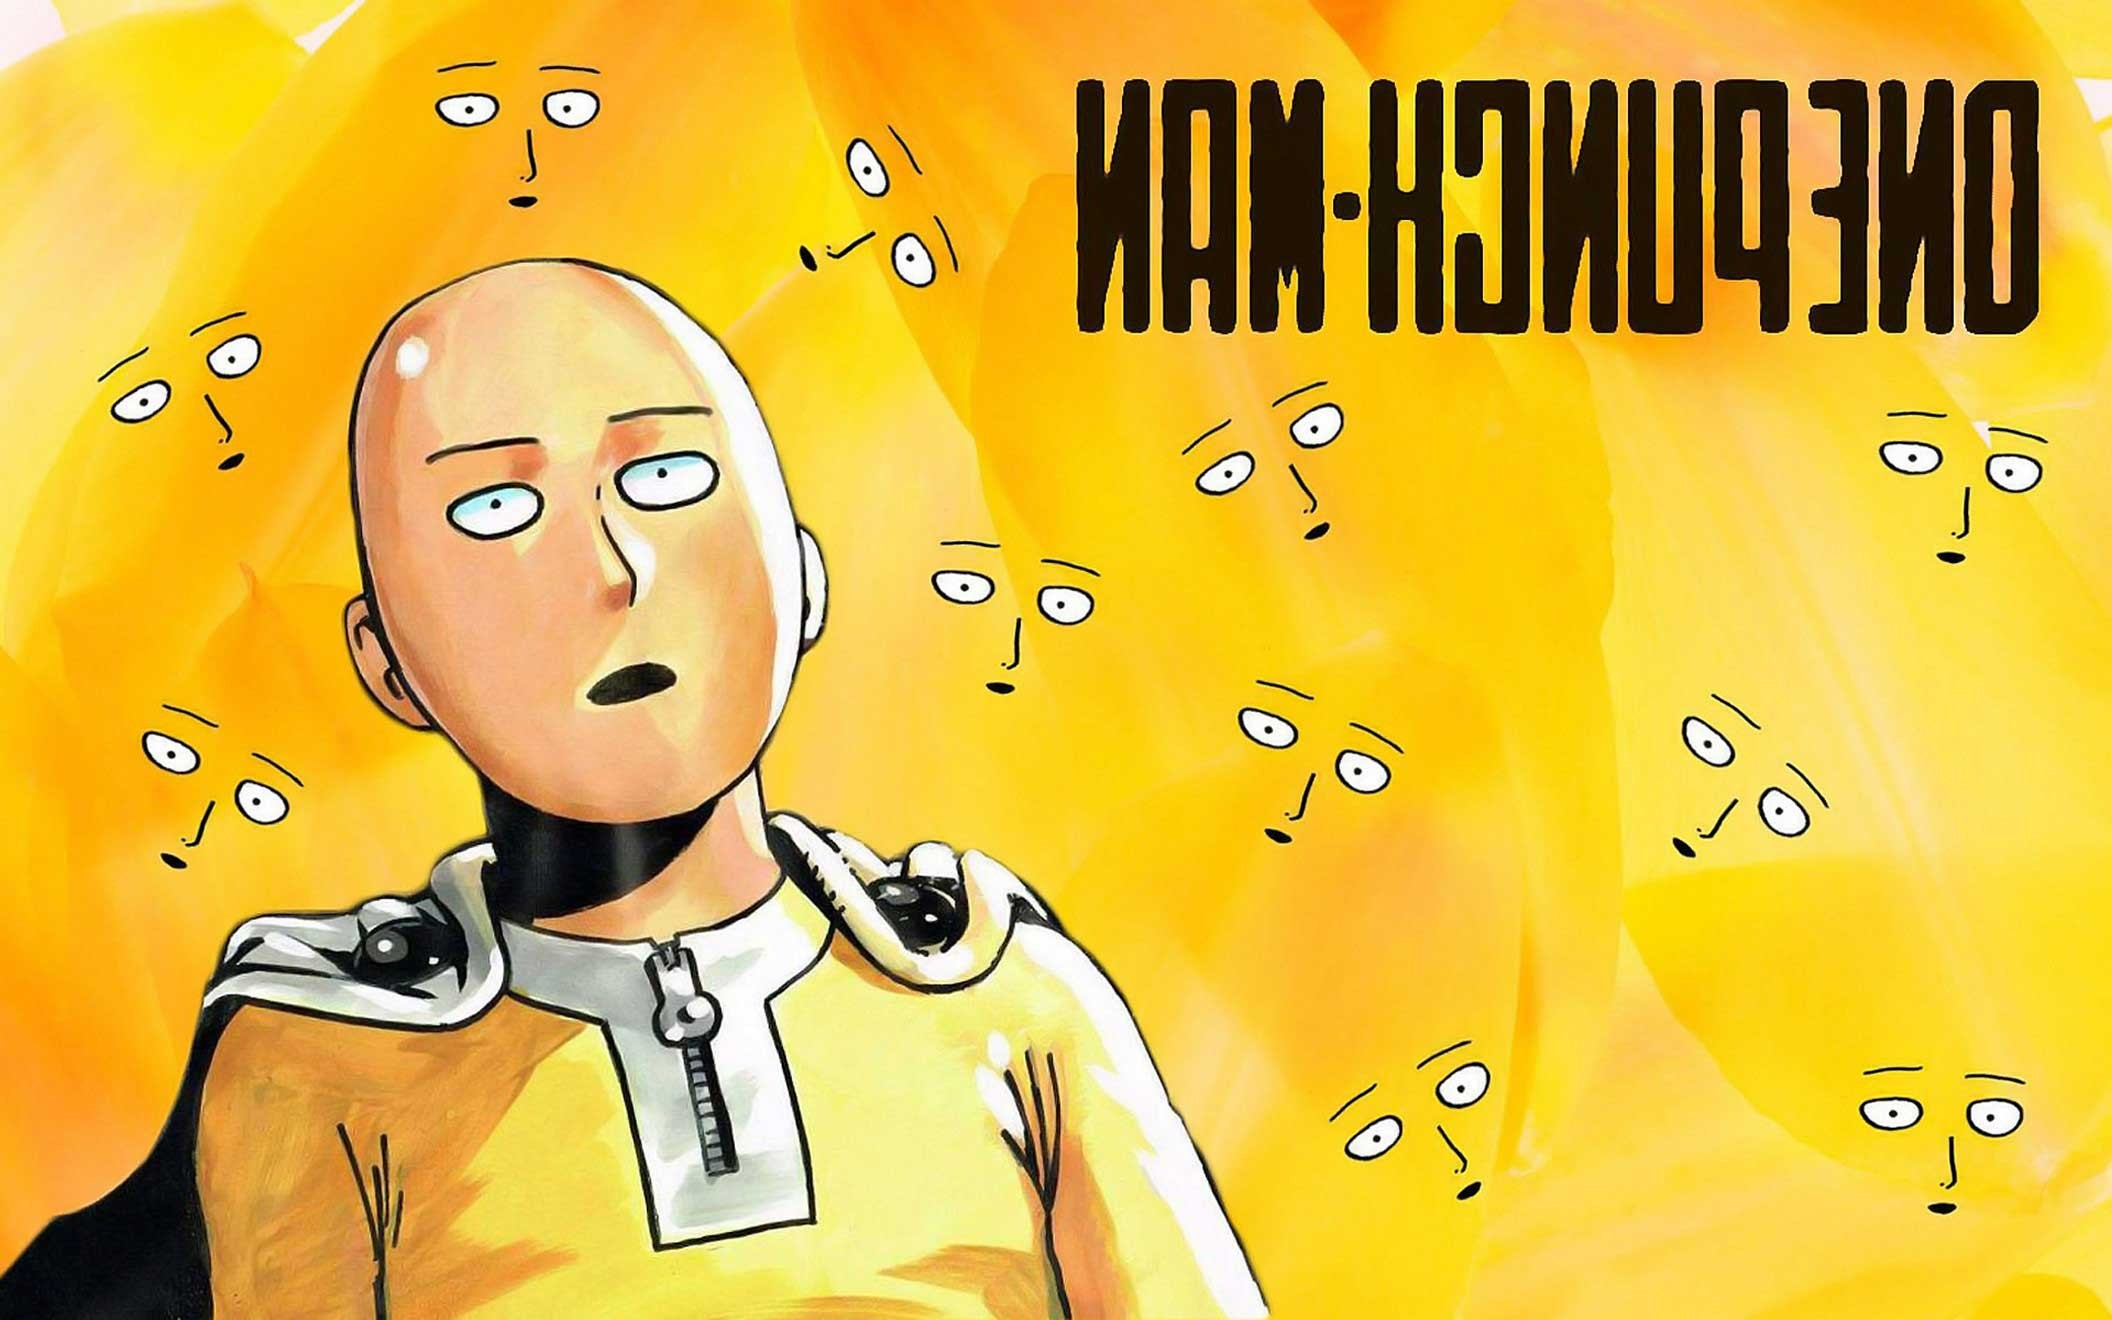 One punch man wallpaper hd download free stunning hd - Funny one punch man wallpaper ...